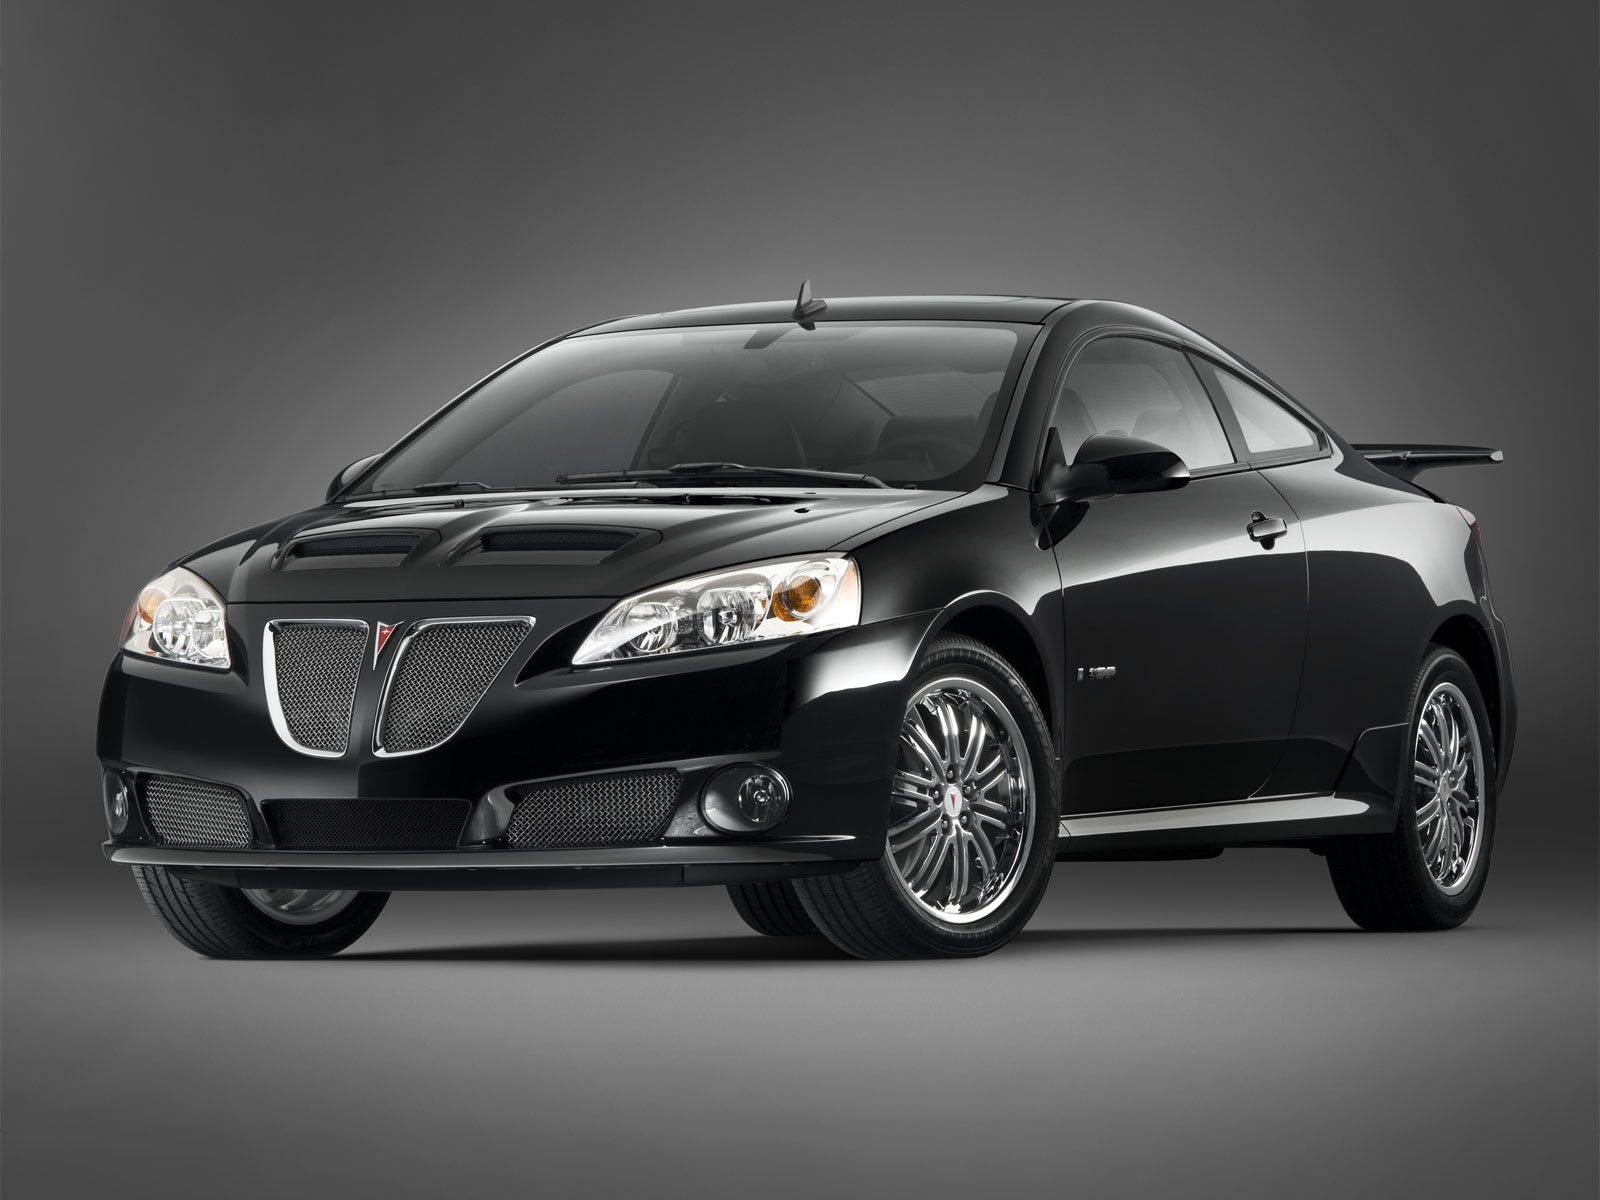 2009 Pontiac G6 Review Cargurus